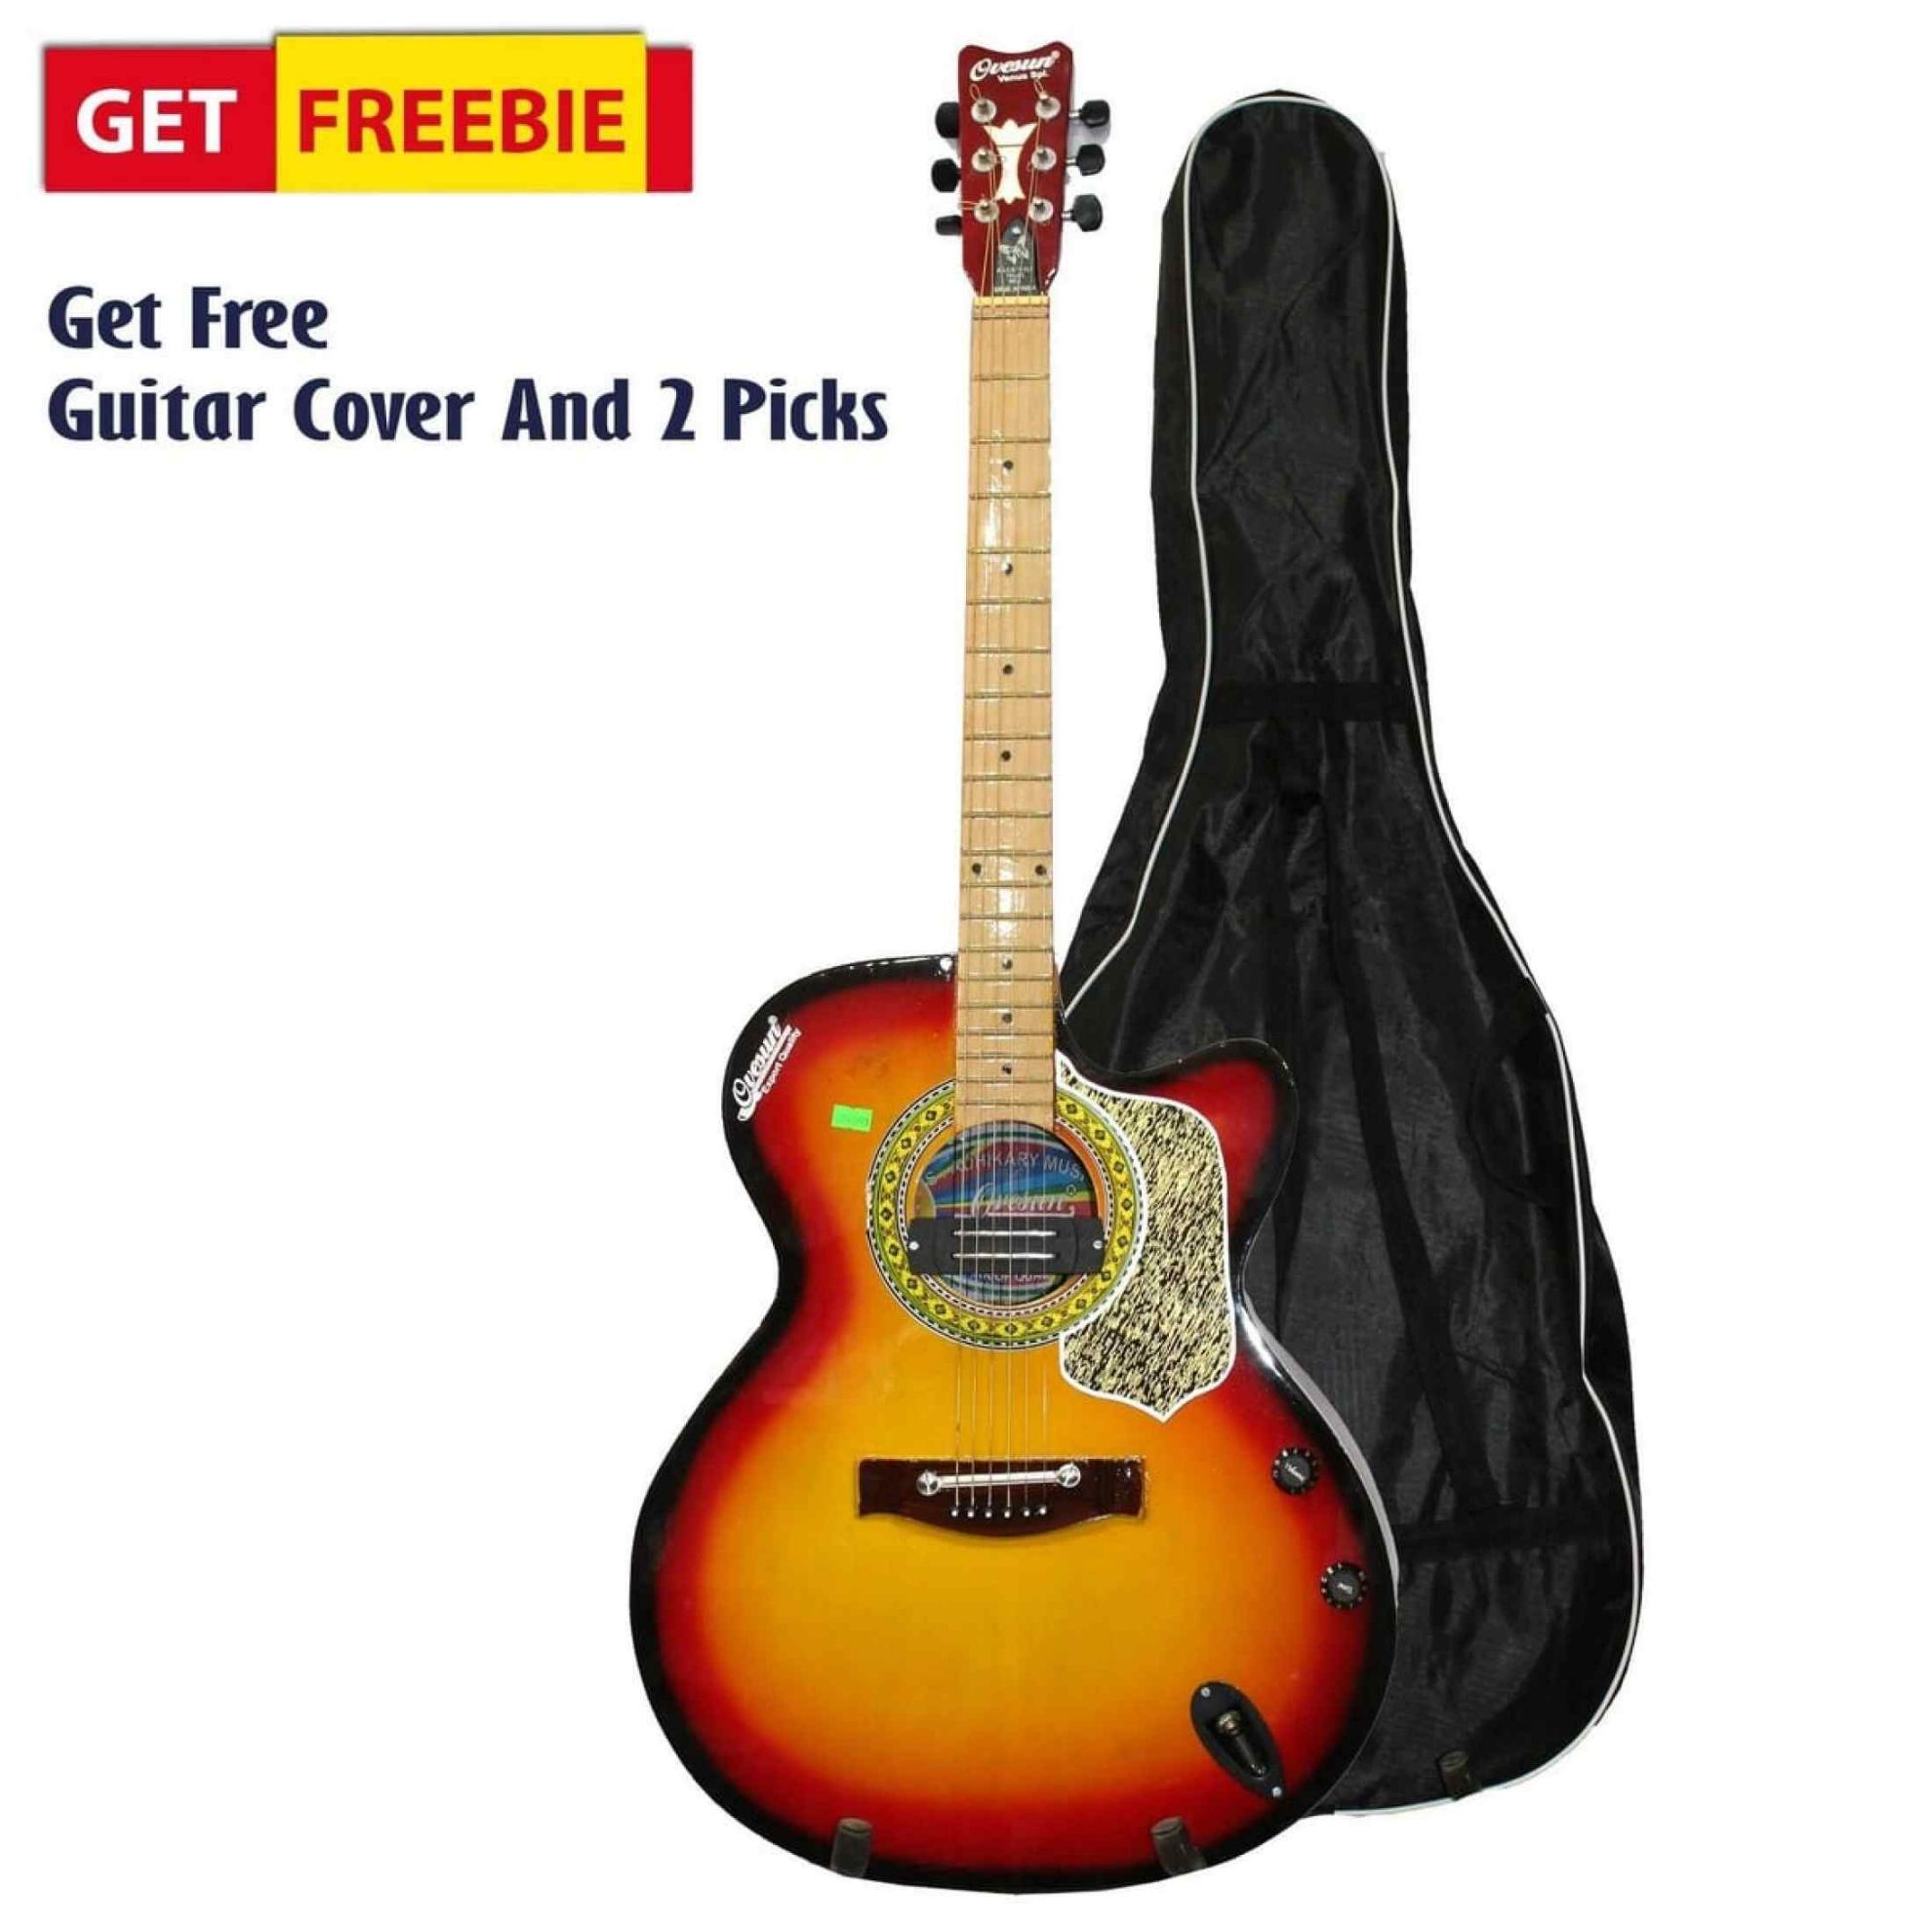 Picture of Sunburst Indian Guitar With Free Cover And 2 Picks